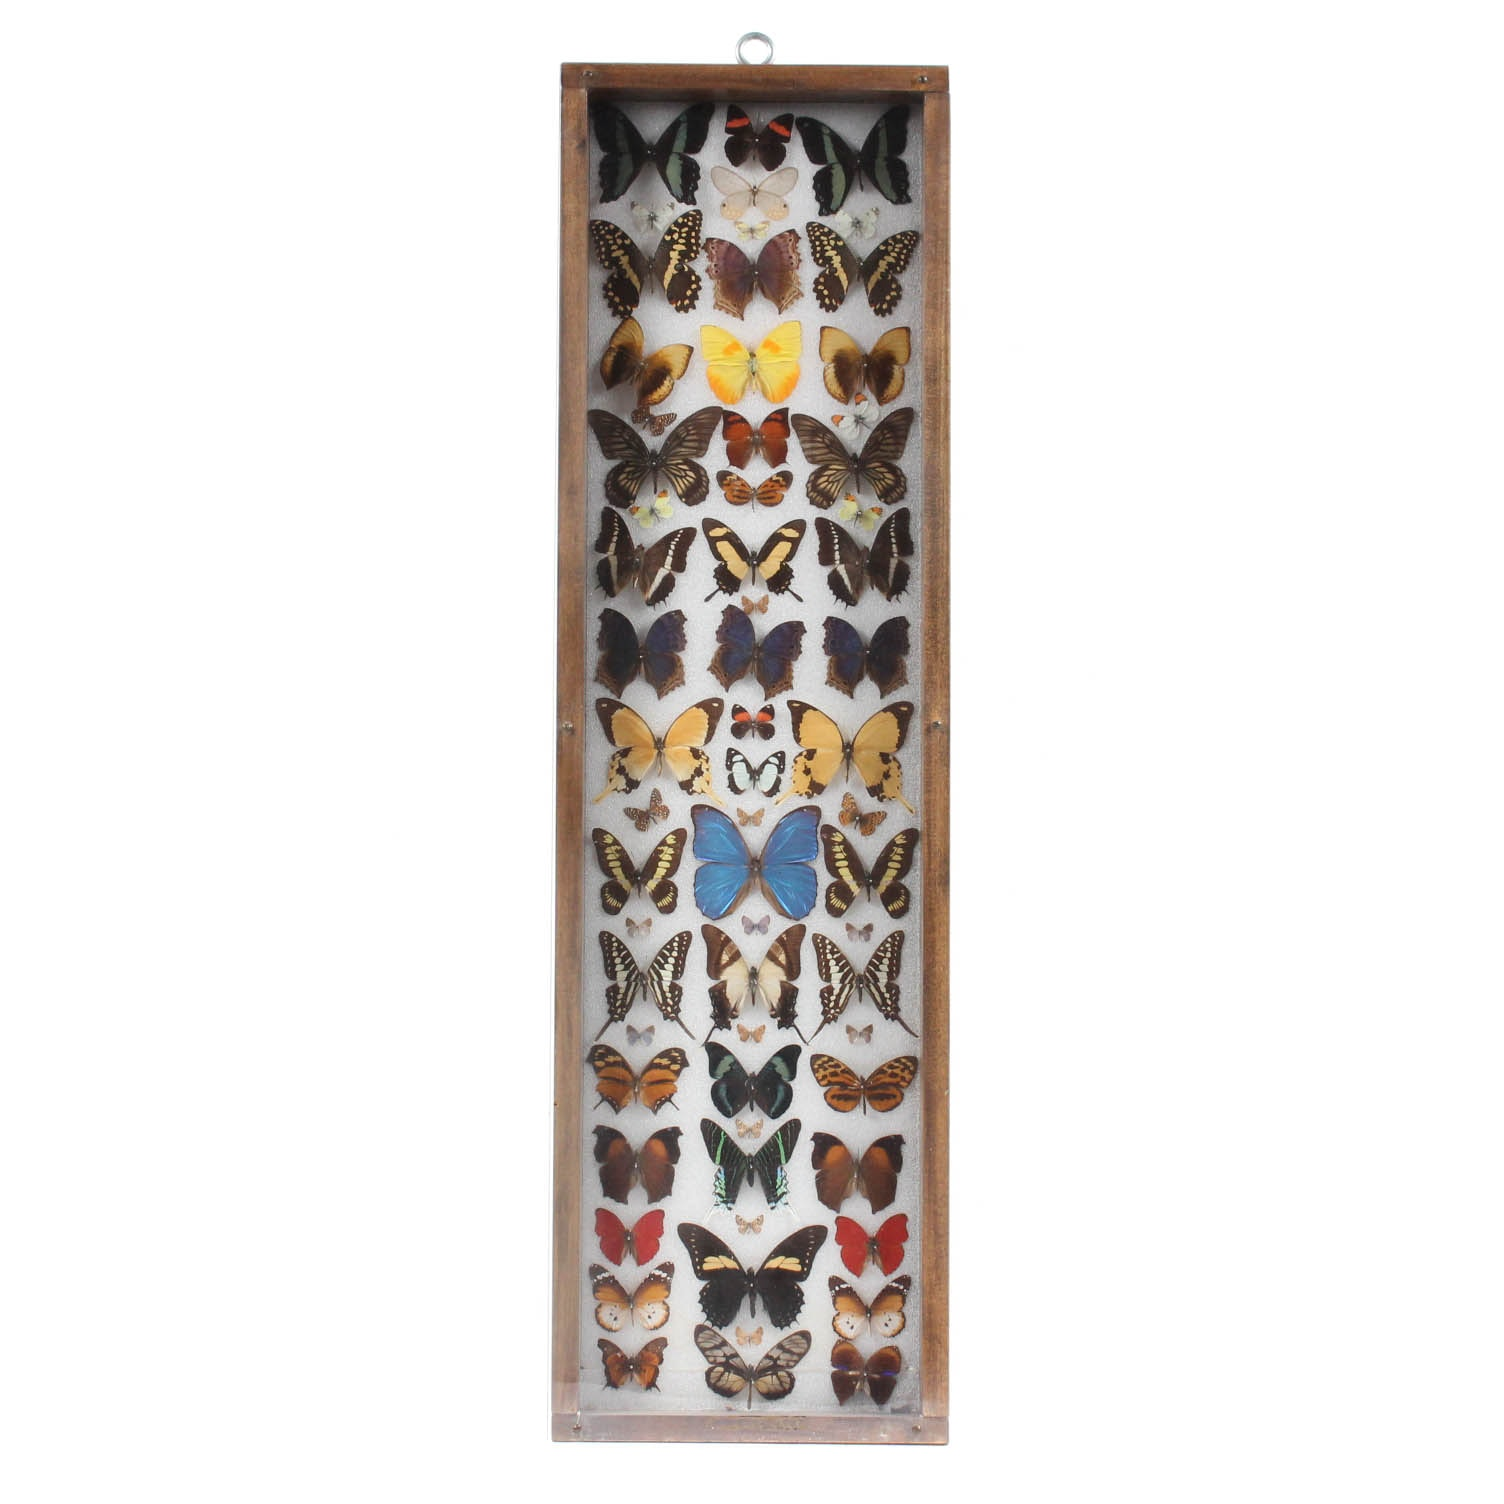 Framed Butterfly and Moth Specimens